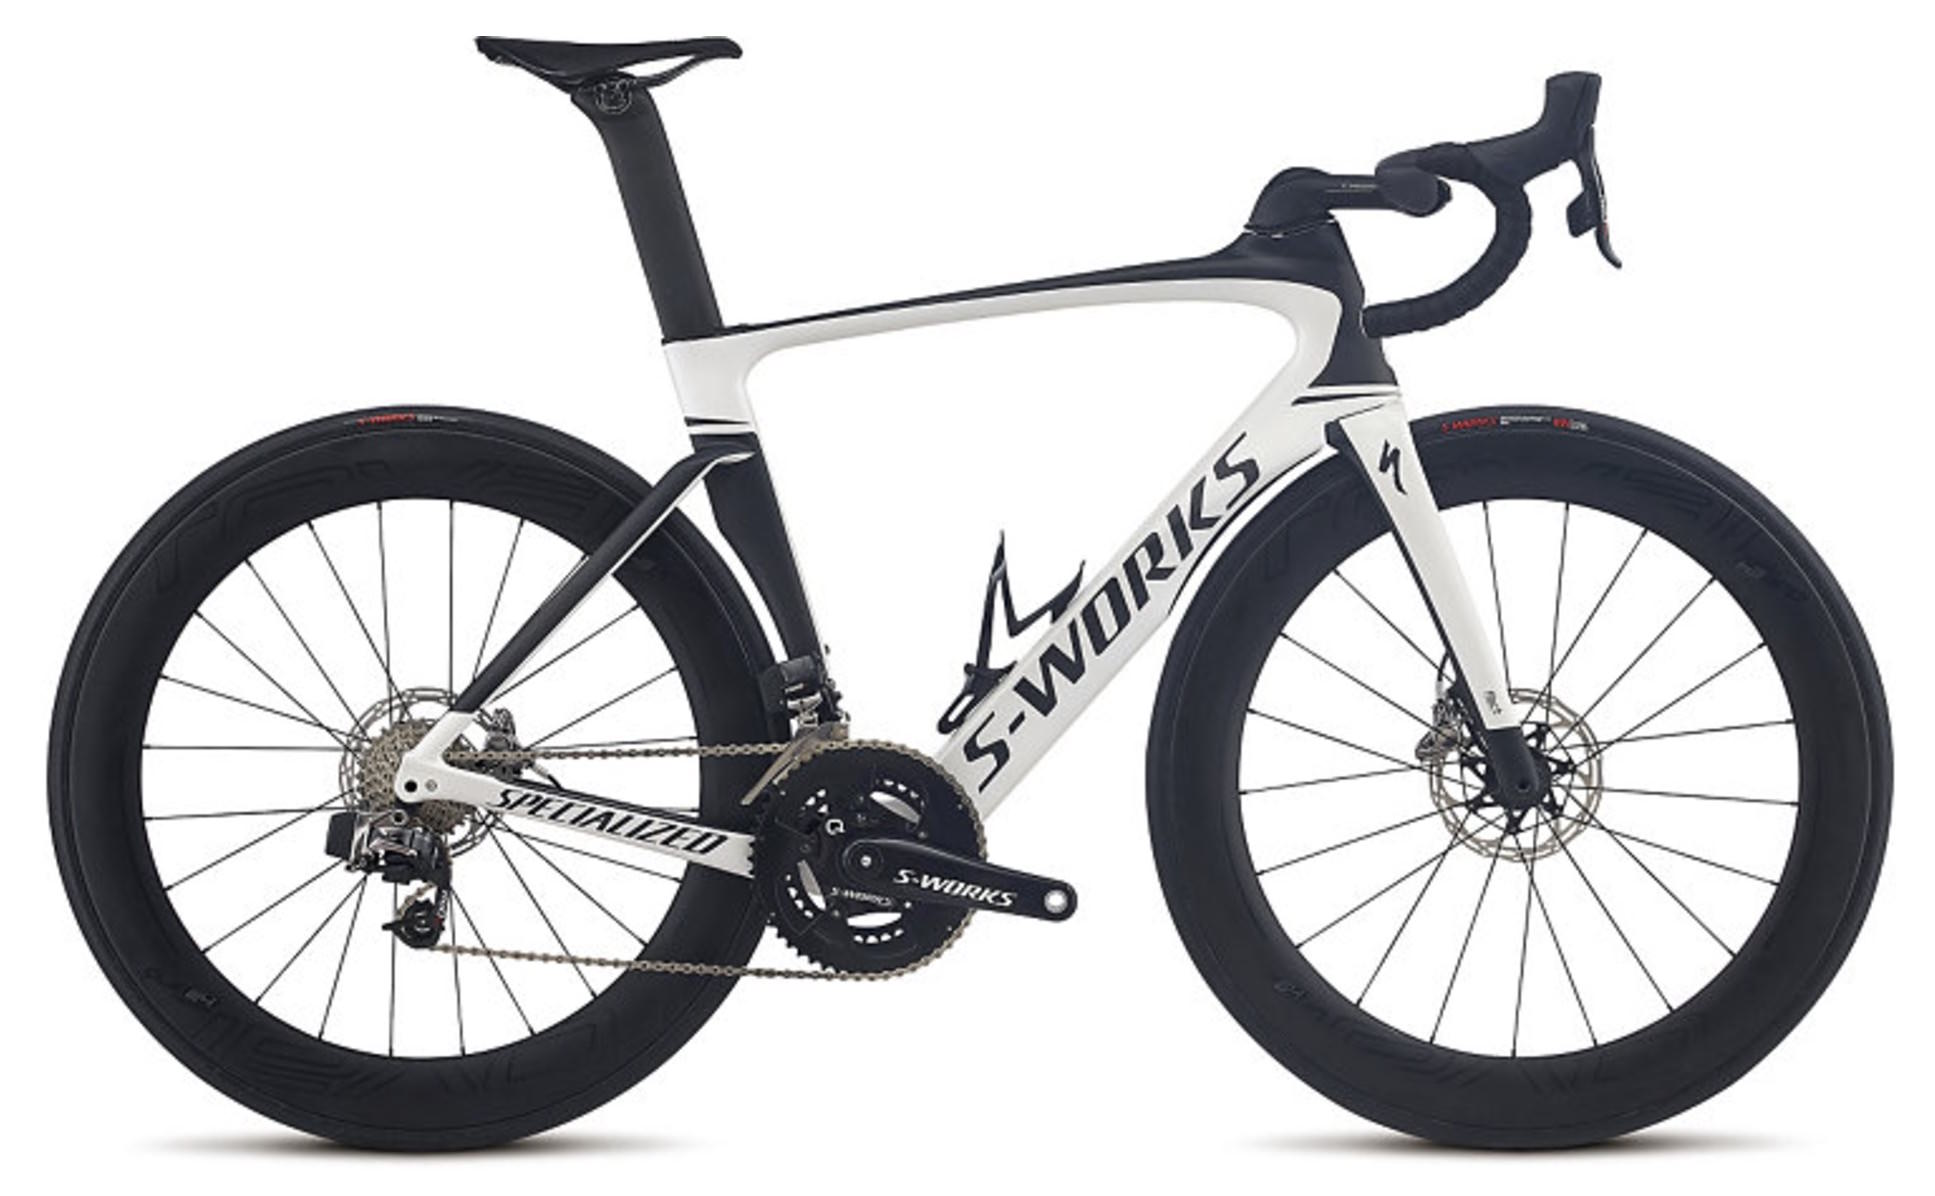 s-works Venge ViAS disc